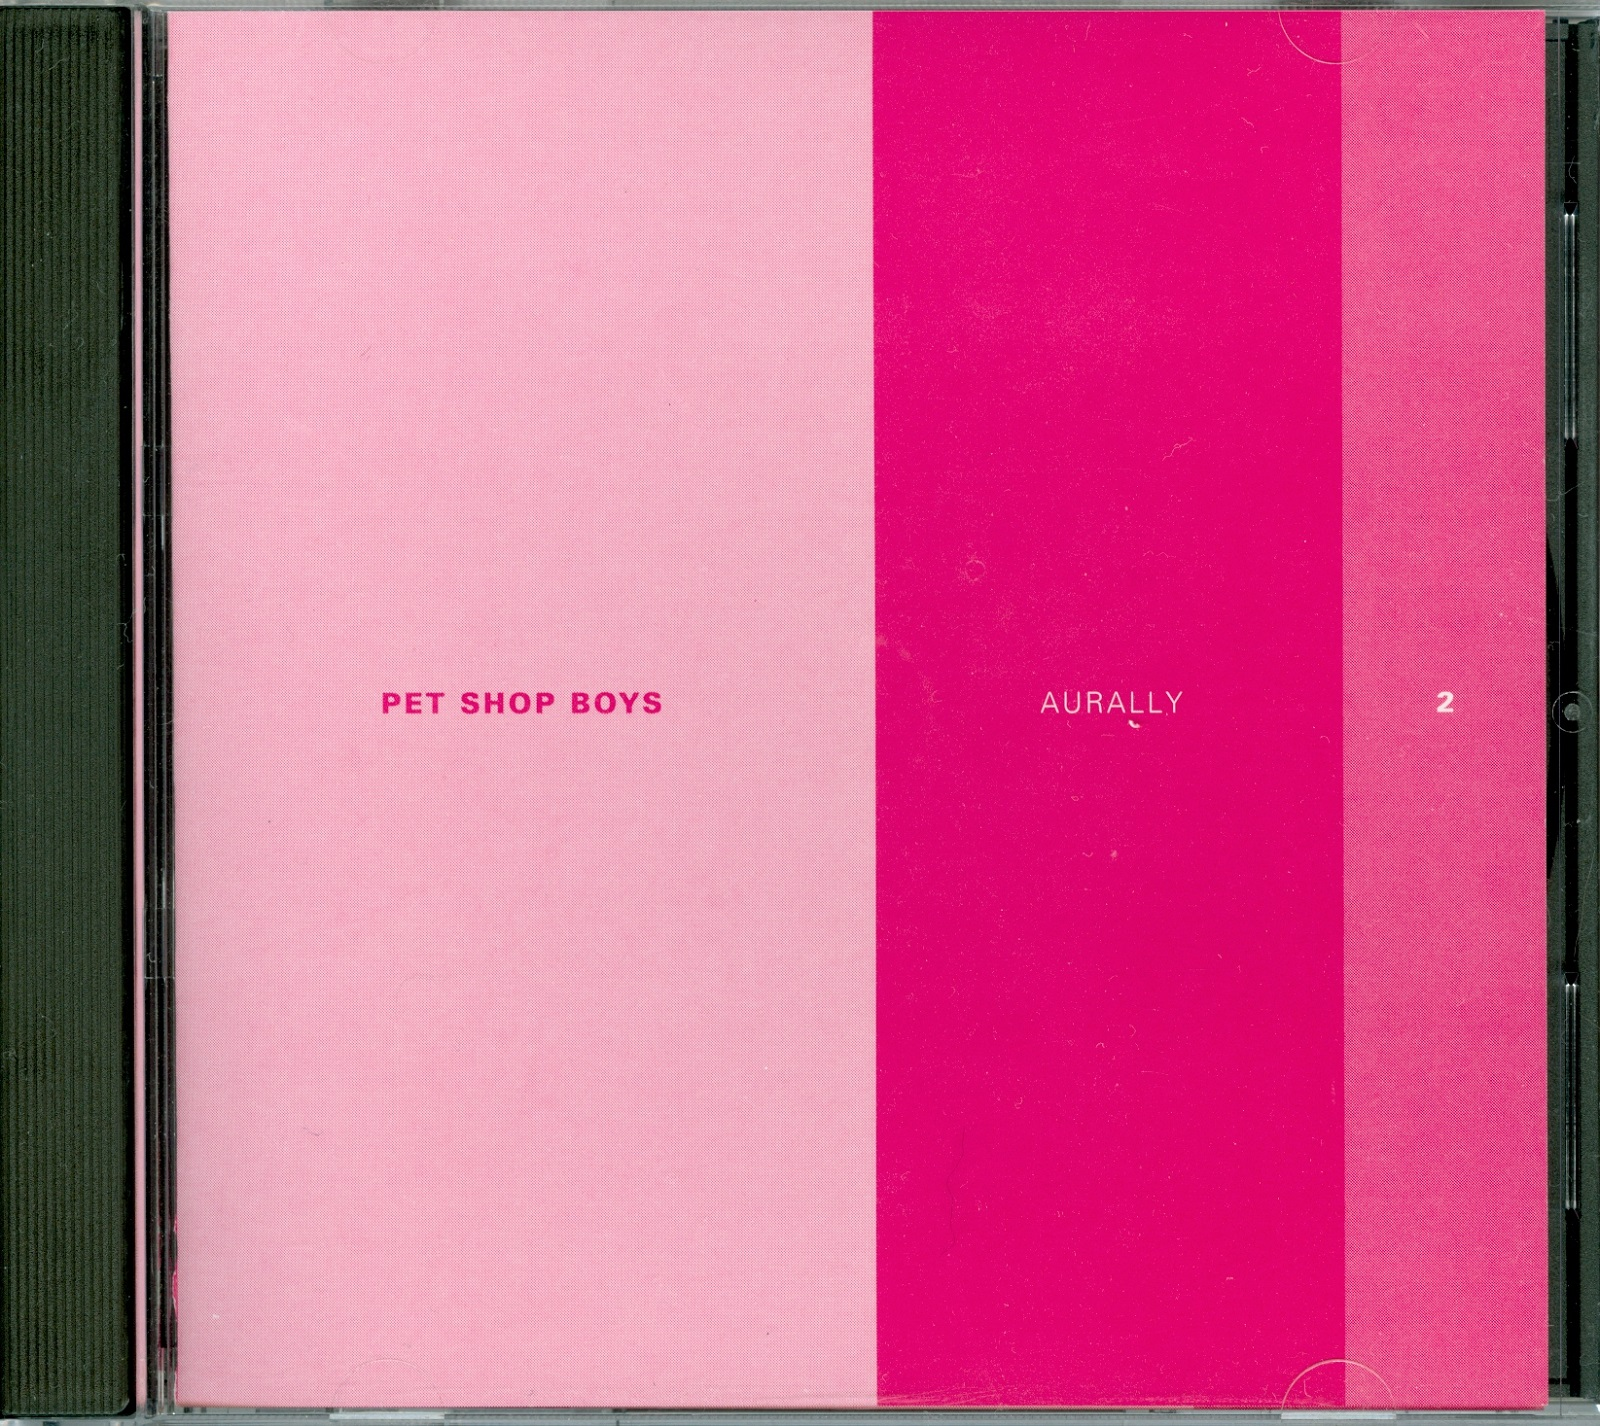 Pet Shop Boys - Aurally 2